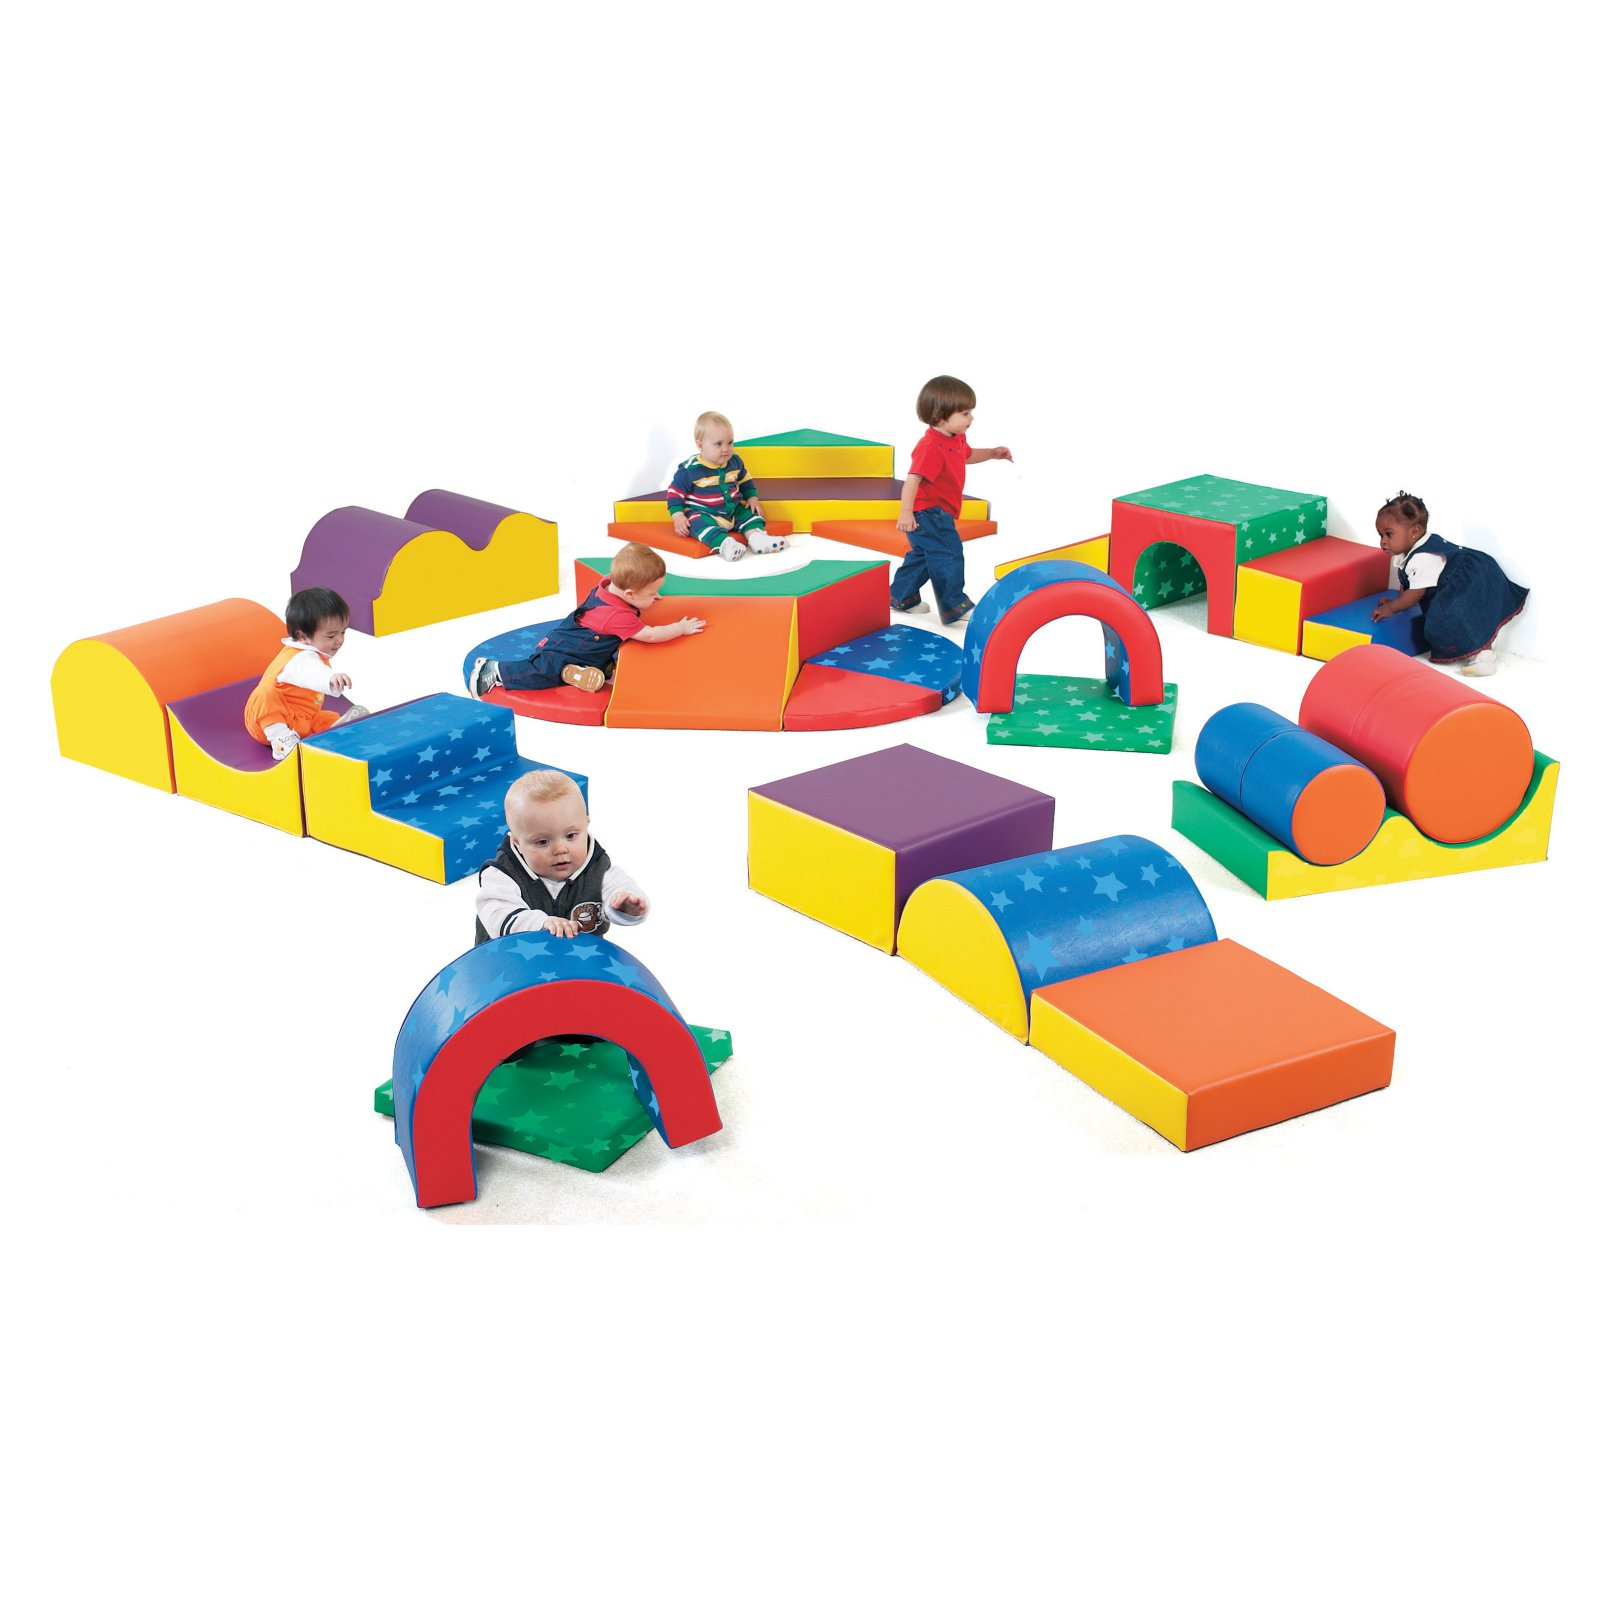 CHILDREN'S FACTORY Gross Motor Soft Play Climbers